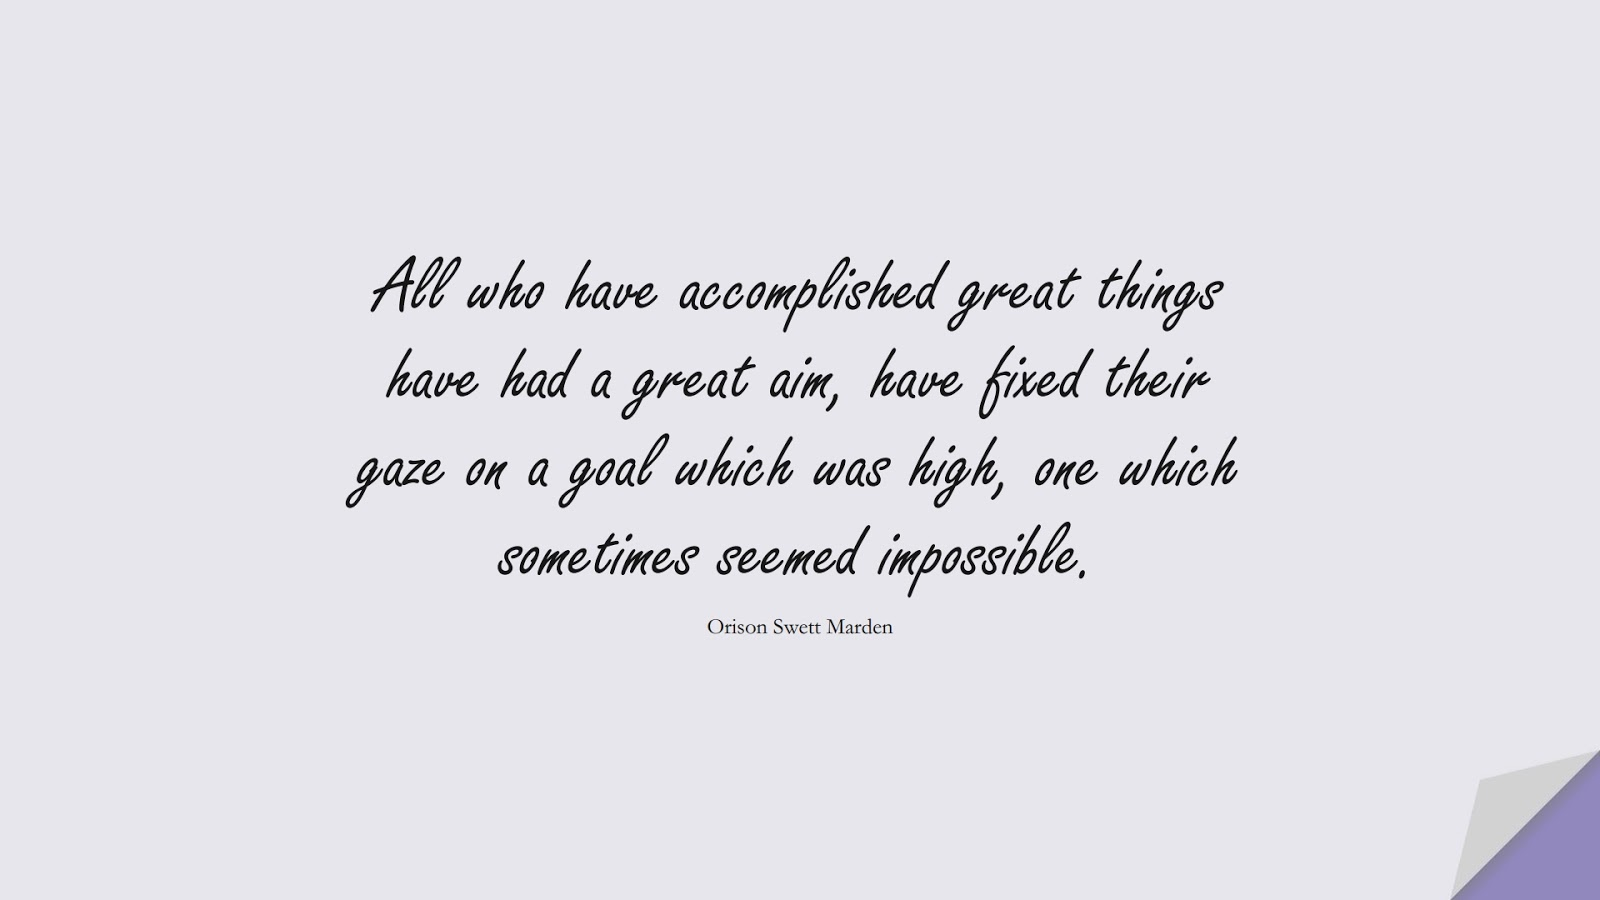 All who have accomplished great things have had a great aim, have fixed their gaze on a goal which was high, one which sometimes seemed impossible. (Orison Swett Marden);  #HardWorkQuotes